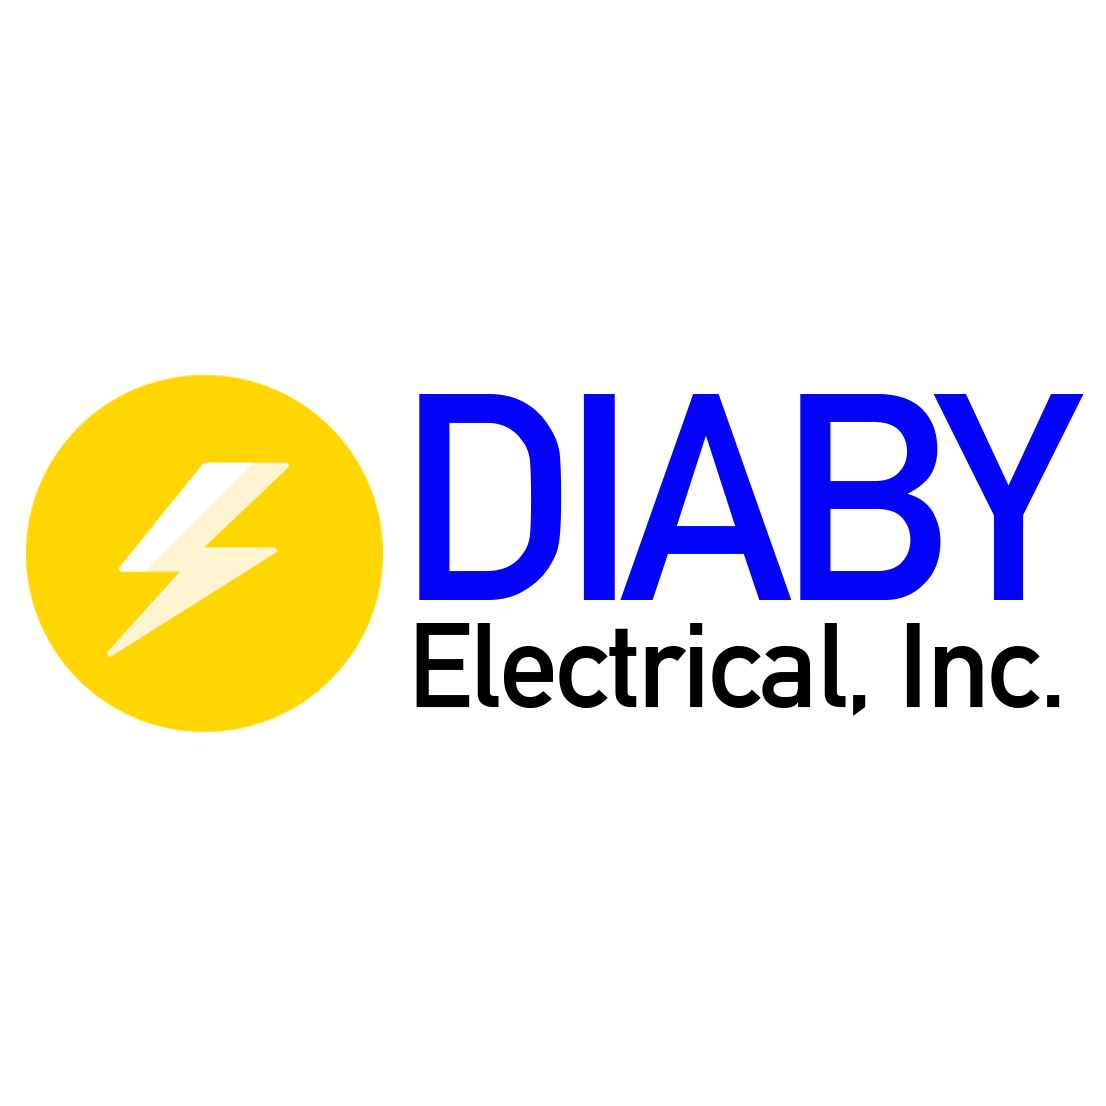 Diaby Electrical, Inc.